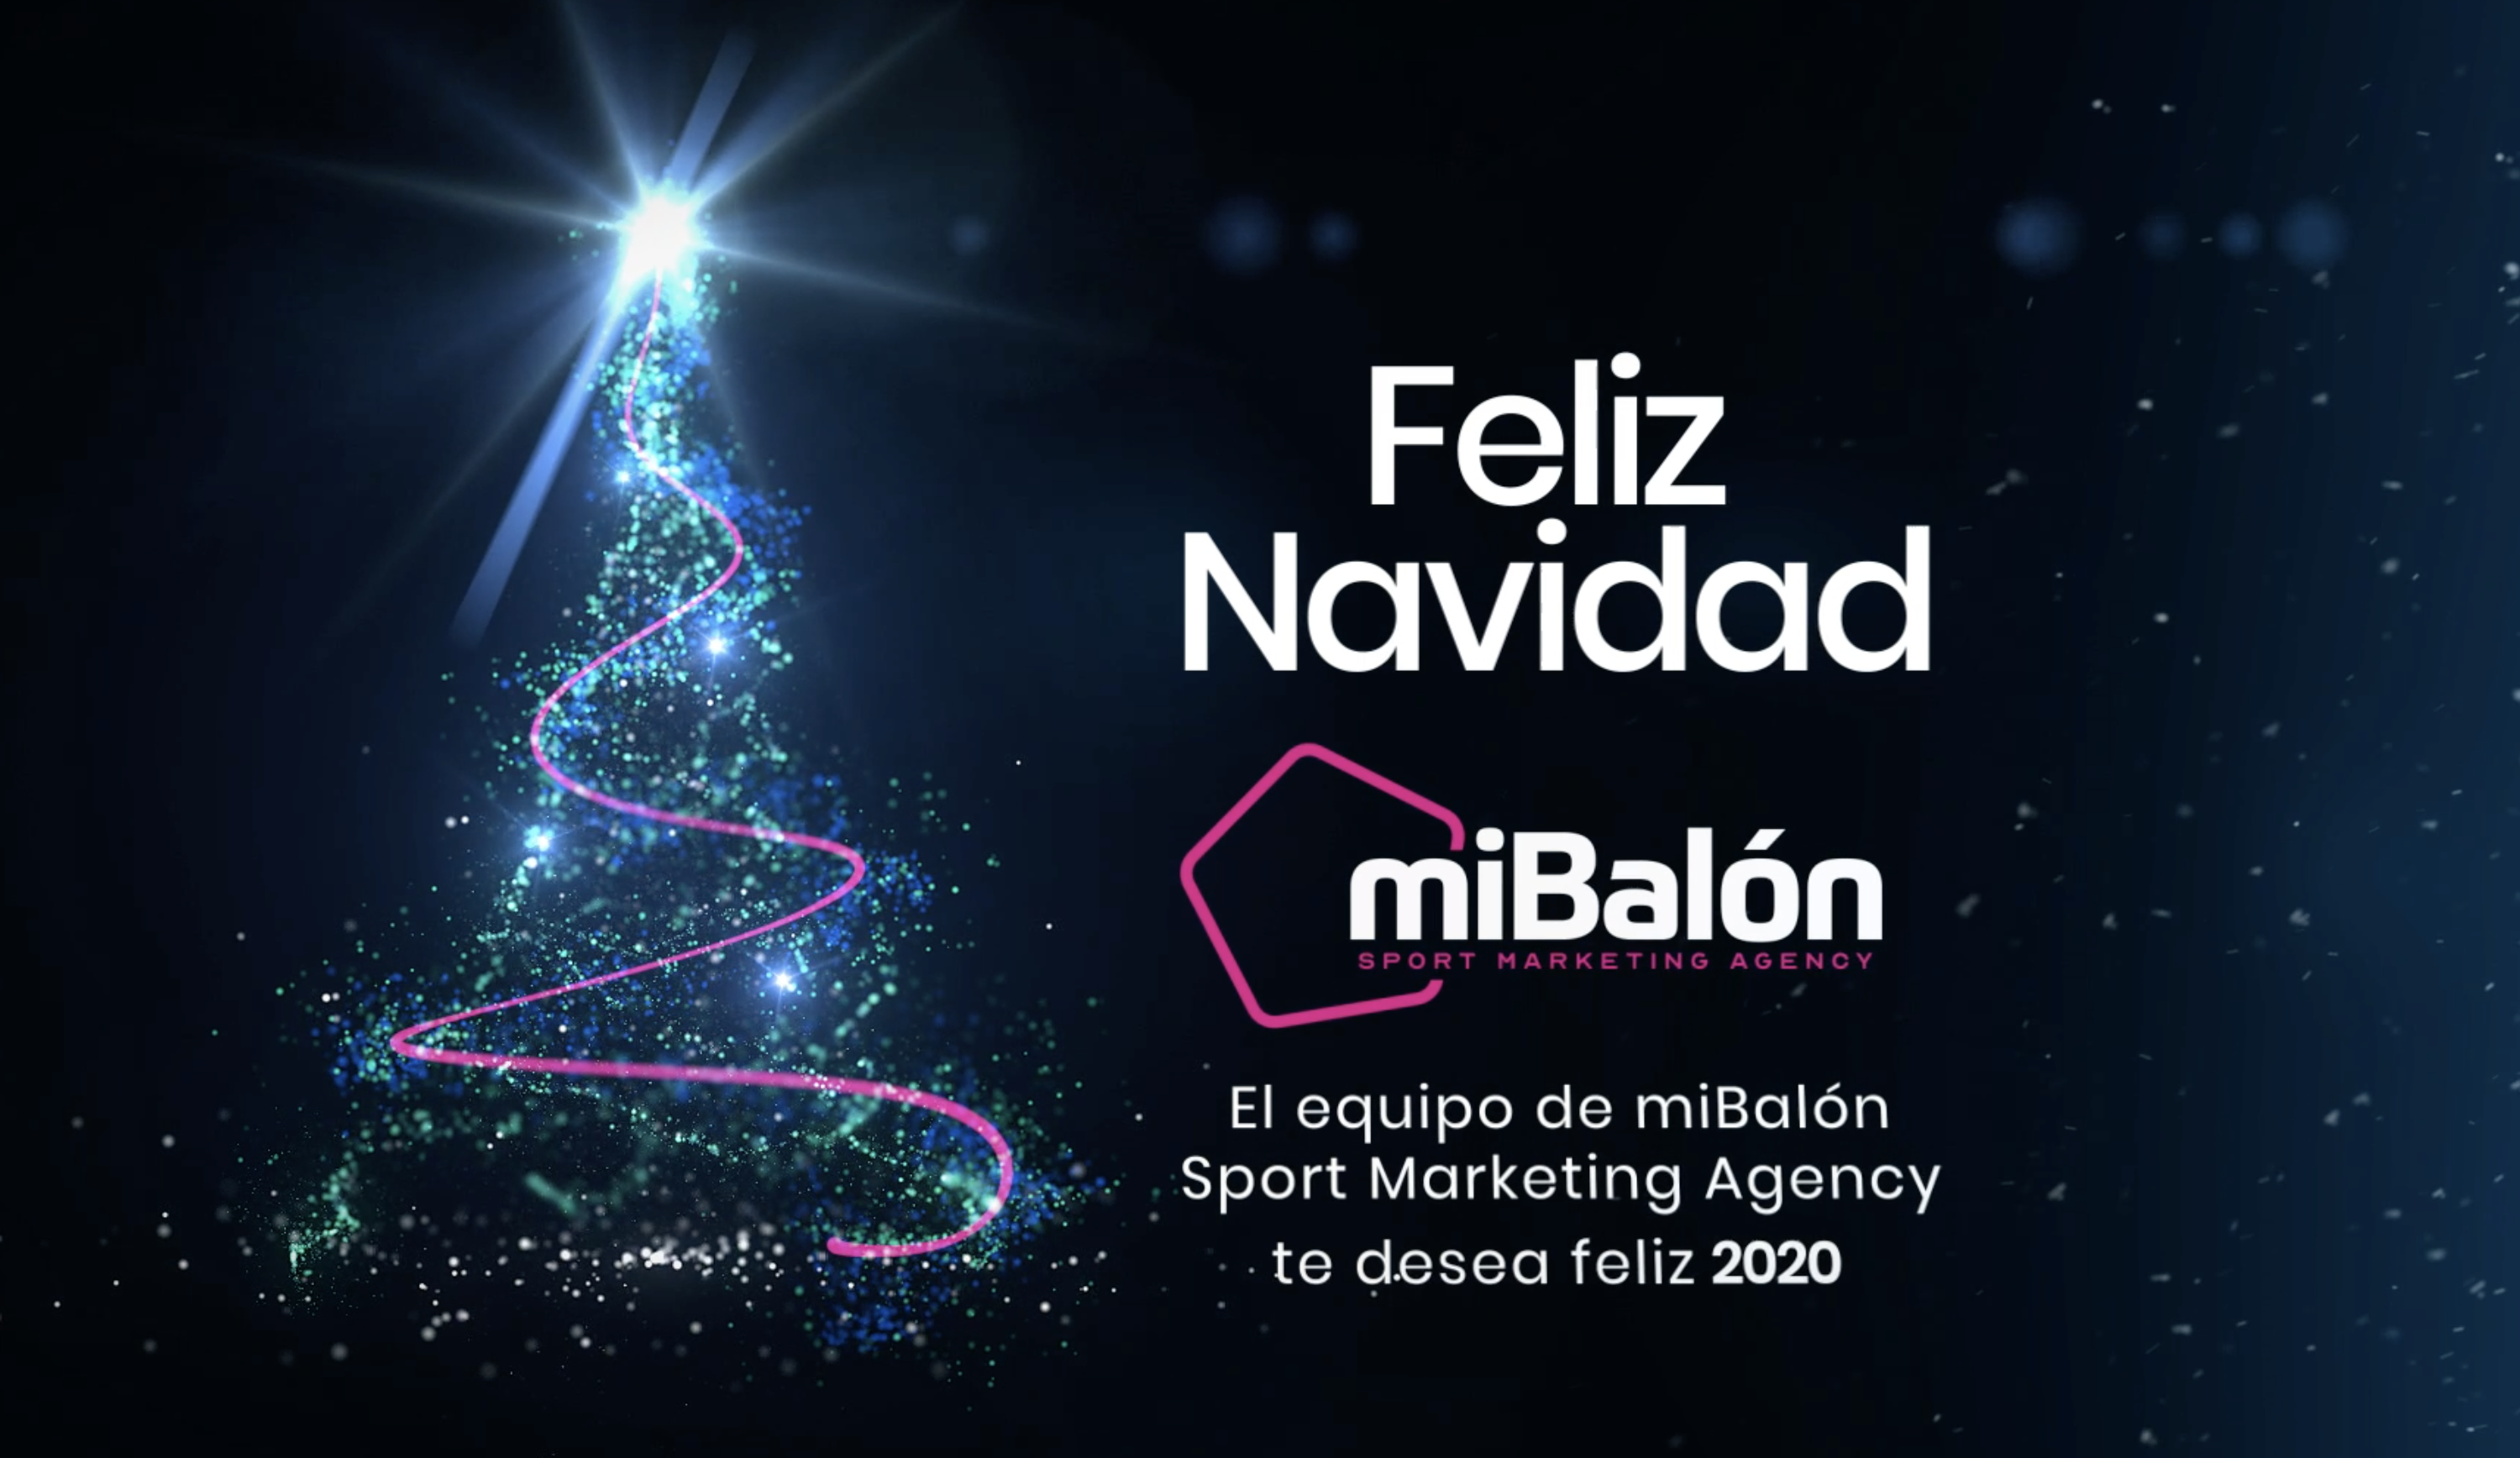 miBalón Sport Marketing Agency te desea felices fiestas.